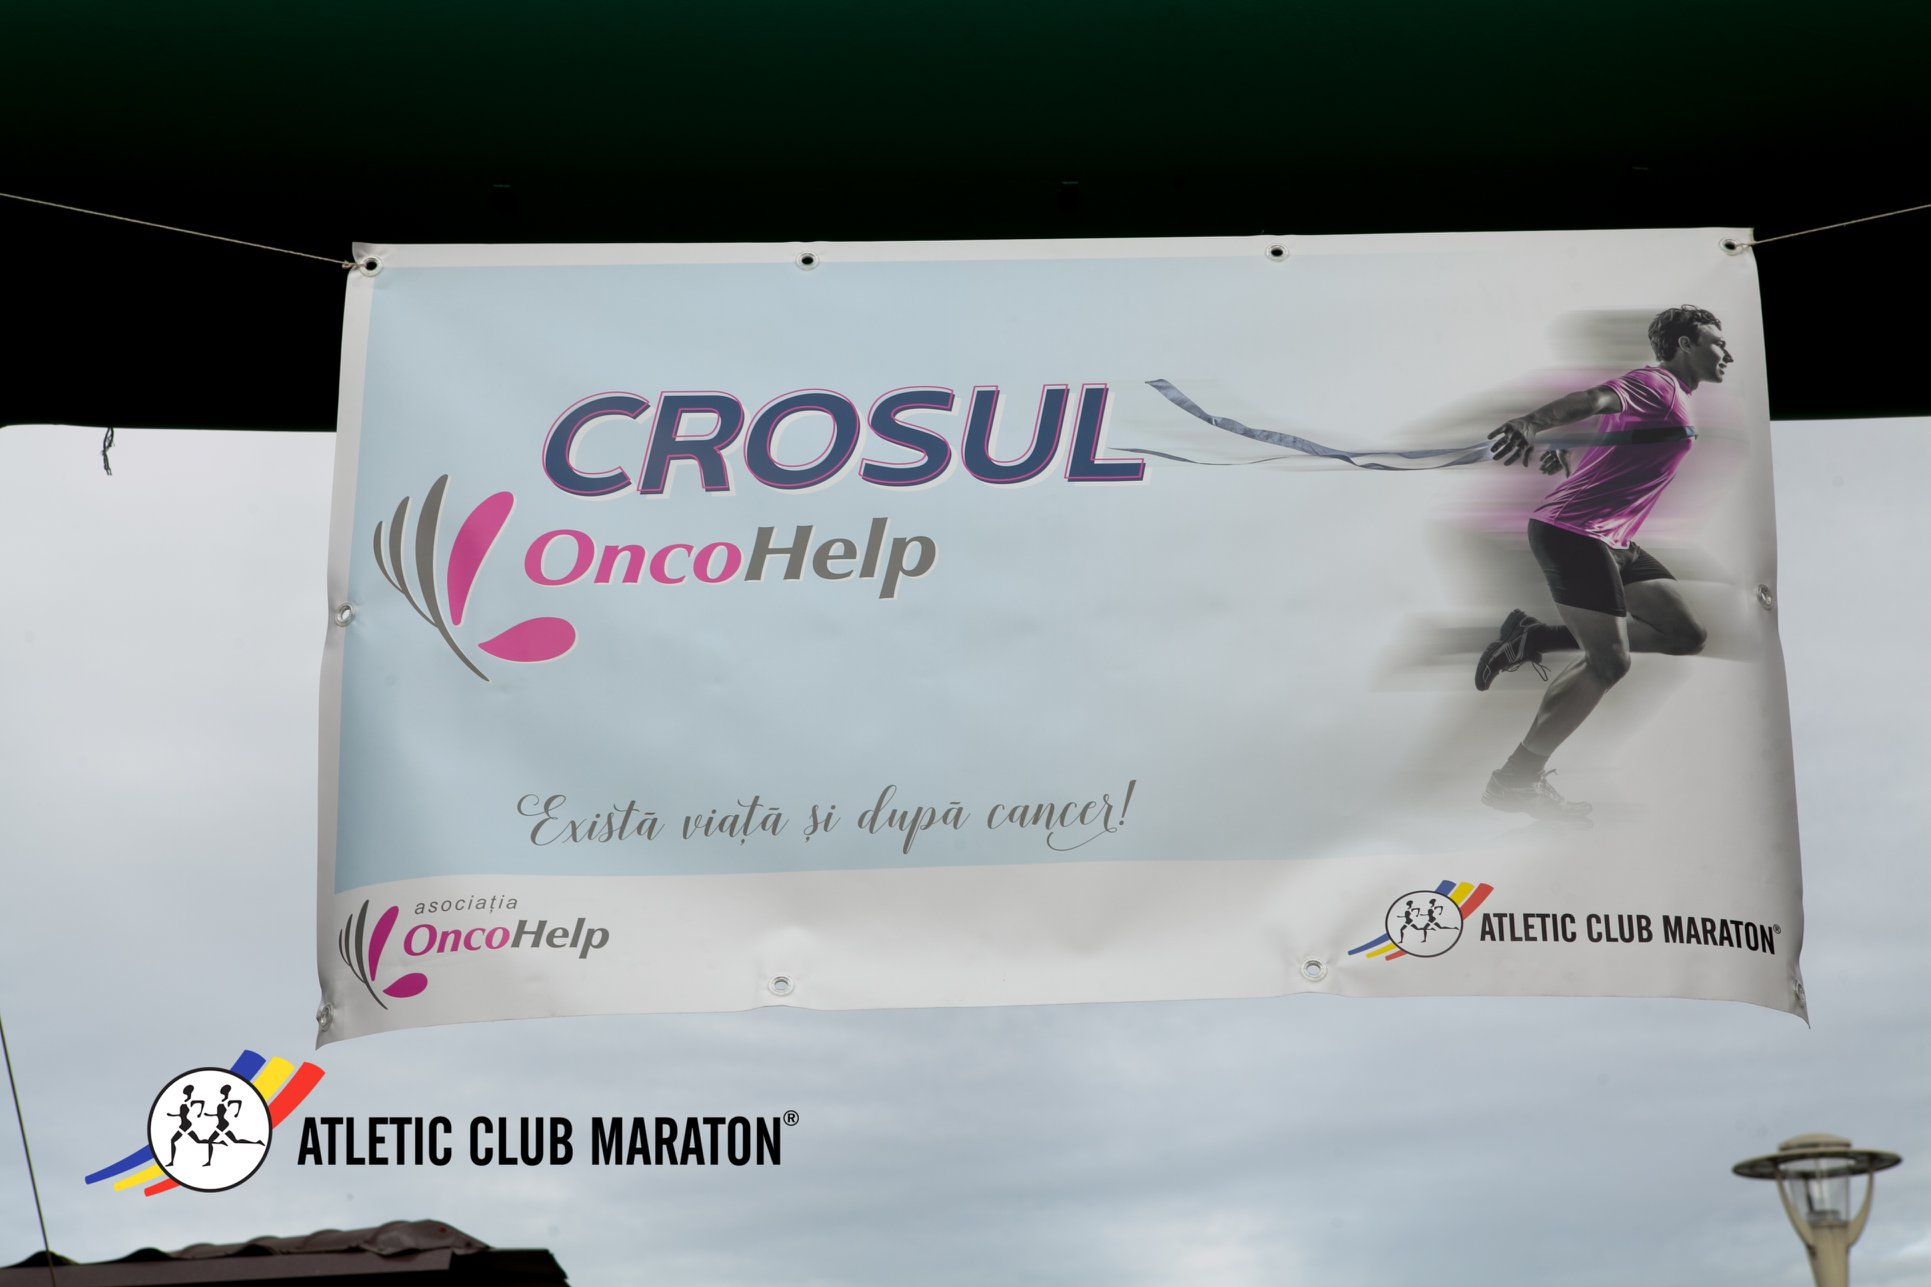 Crosul Oncohelp